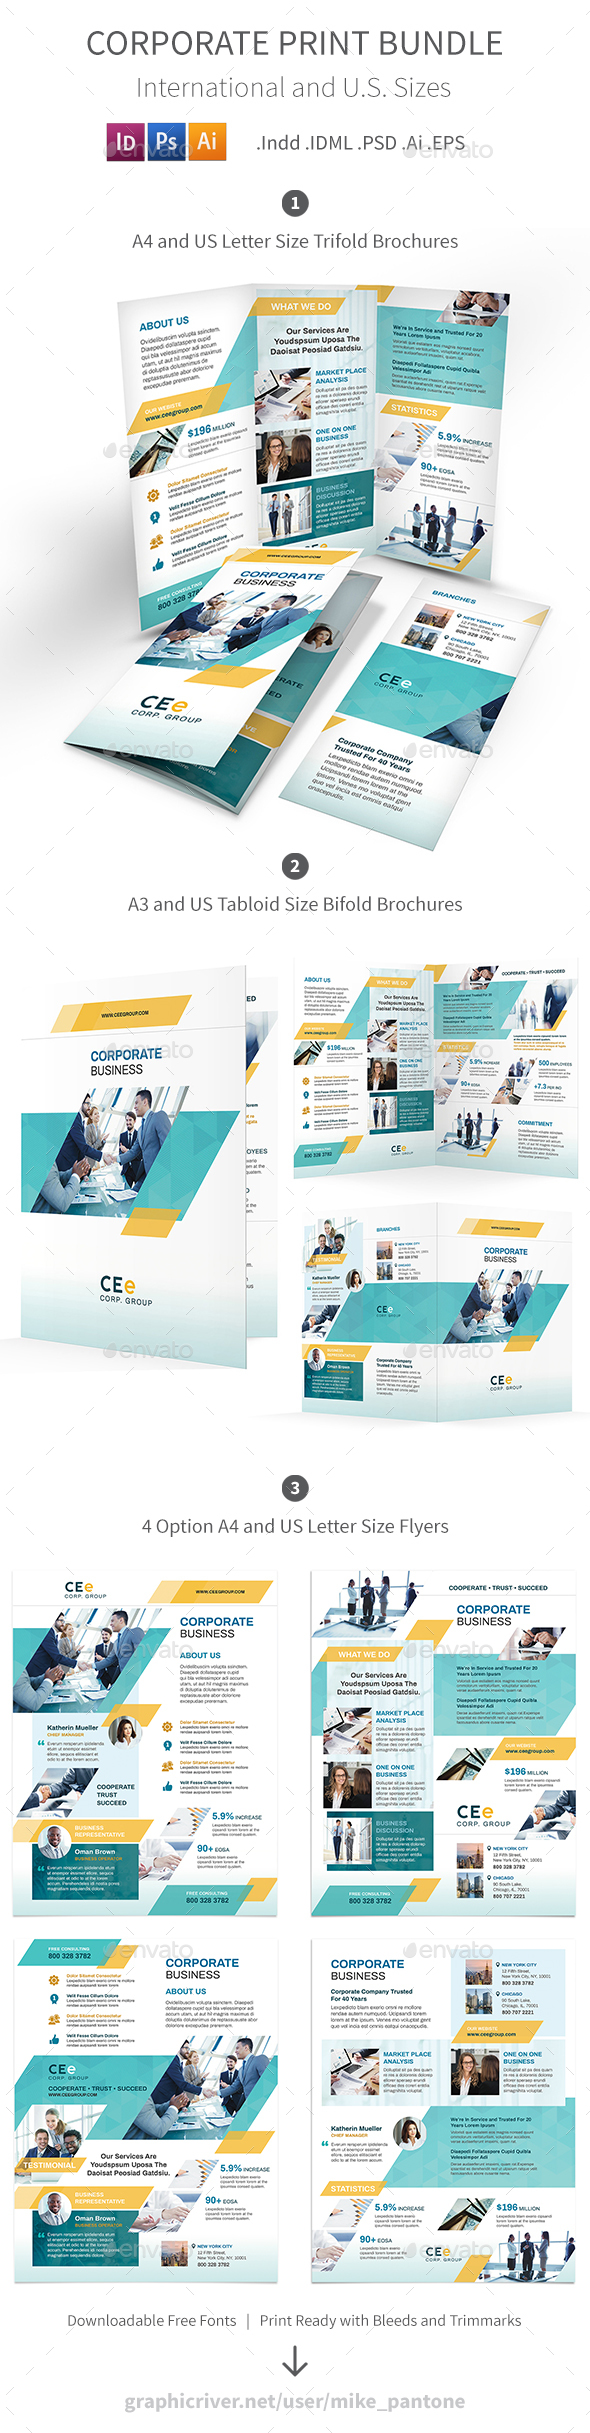 Corporate Print Bundle 5 - Corporate Brochures